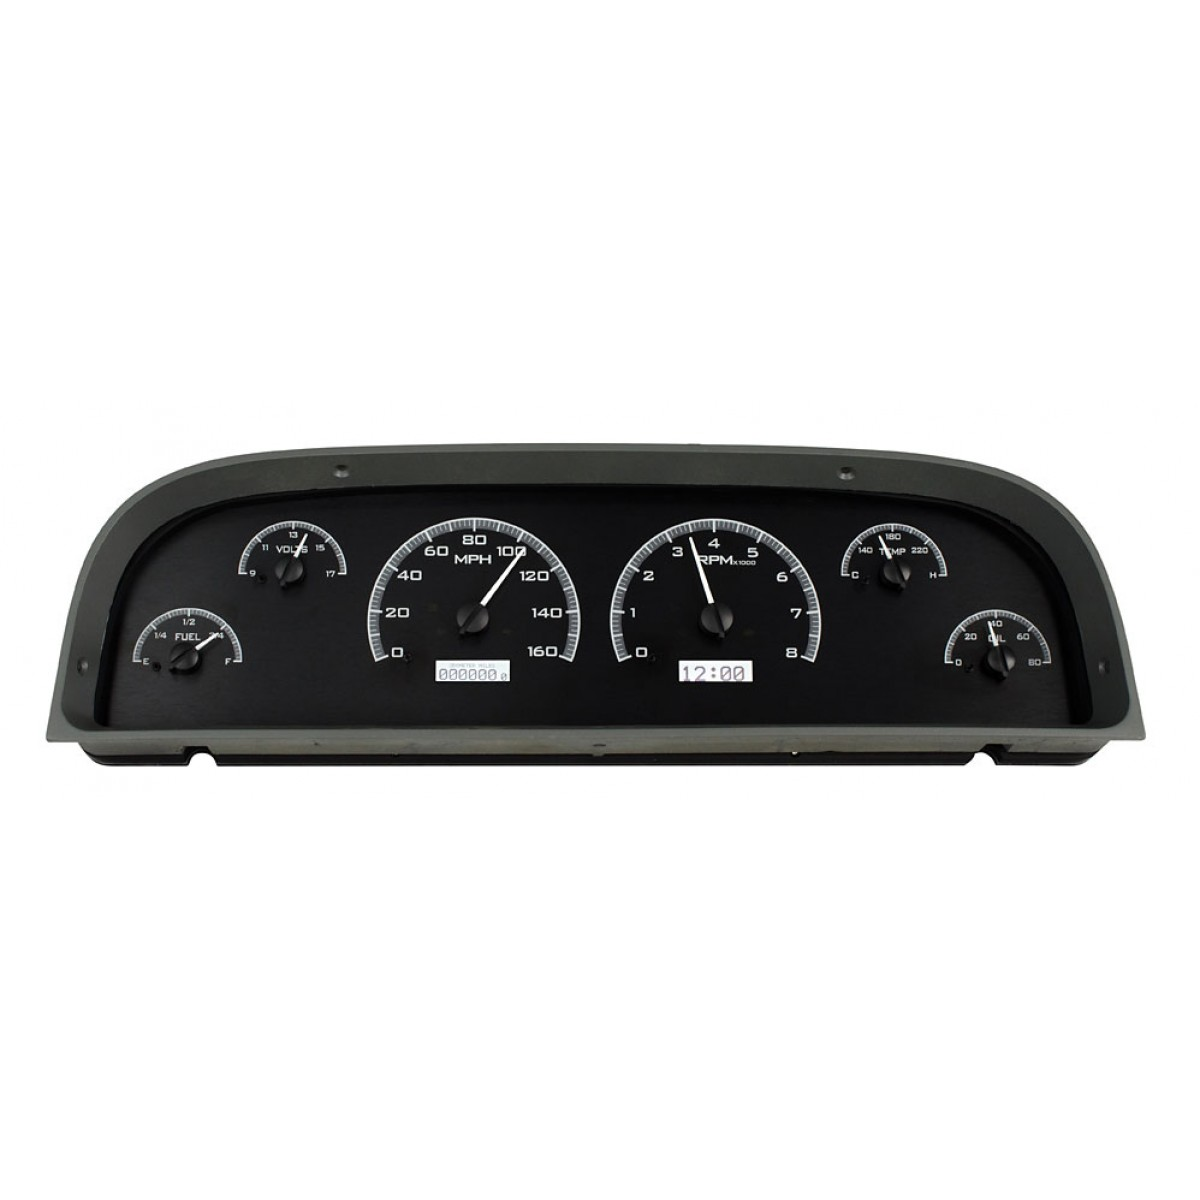 1960 63 chevy c10 pickup dakota digital gauges vhx system black